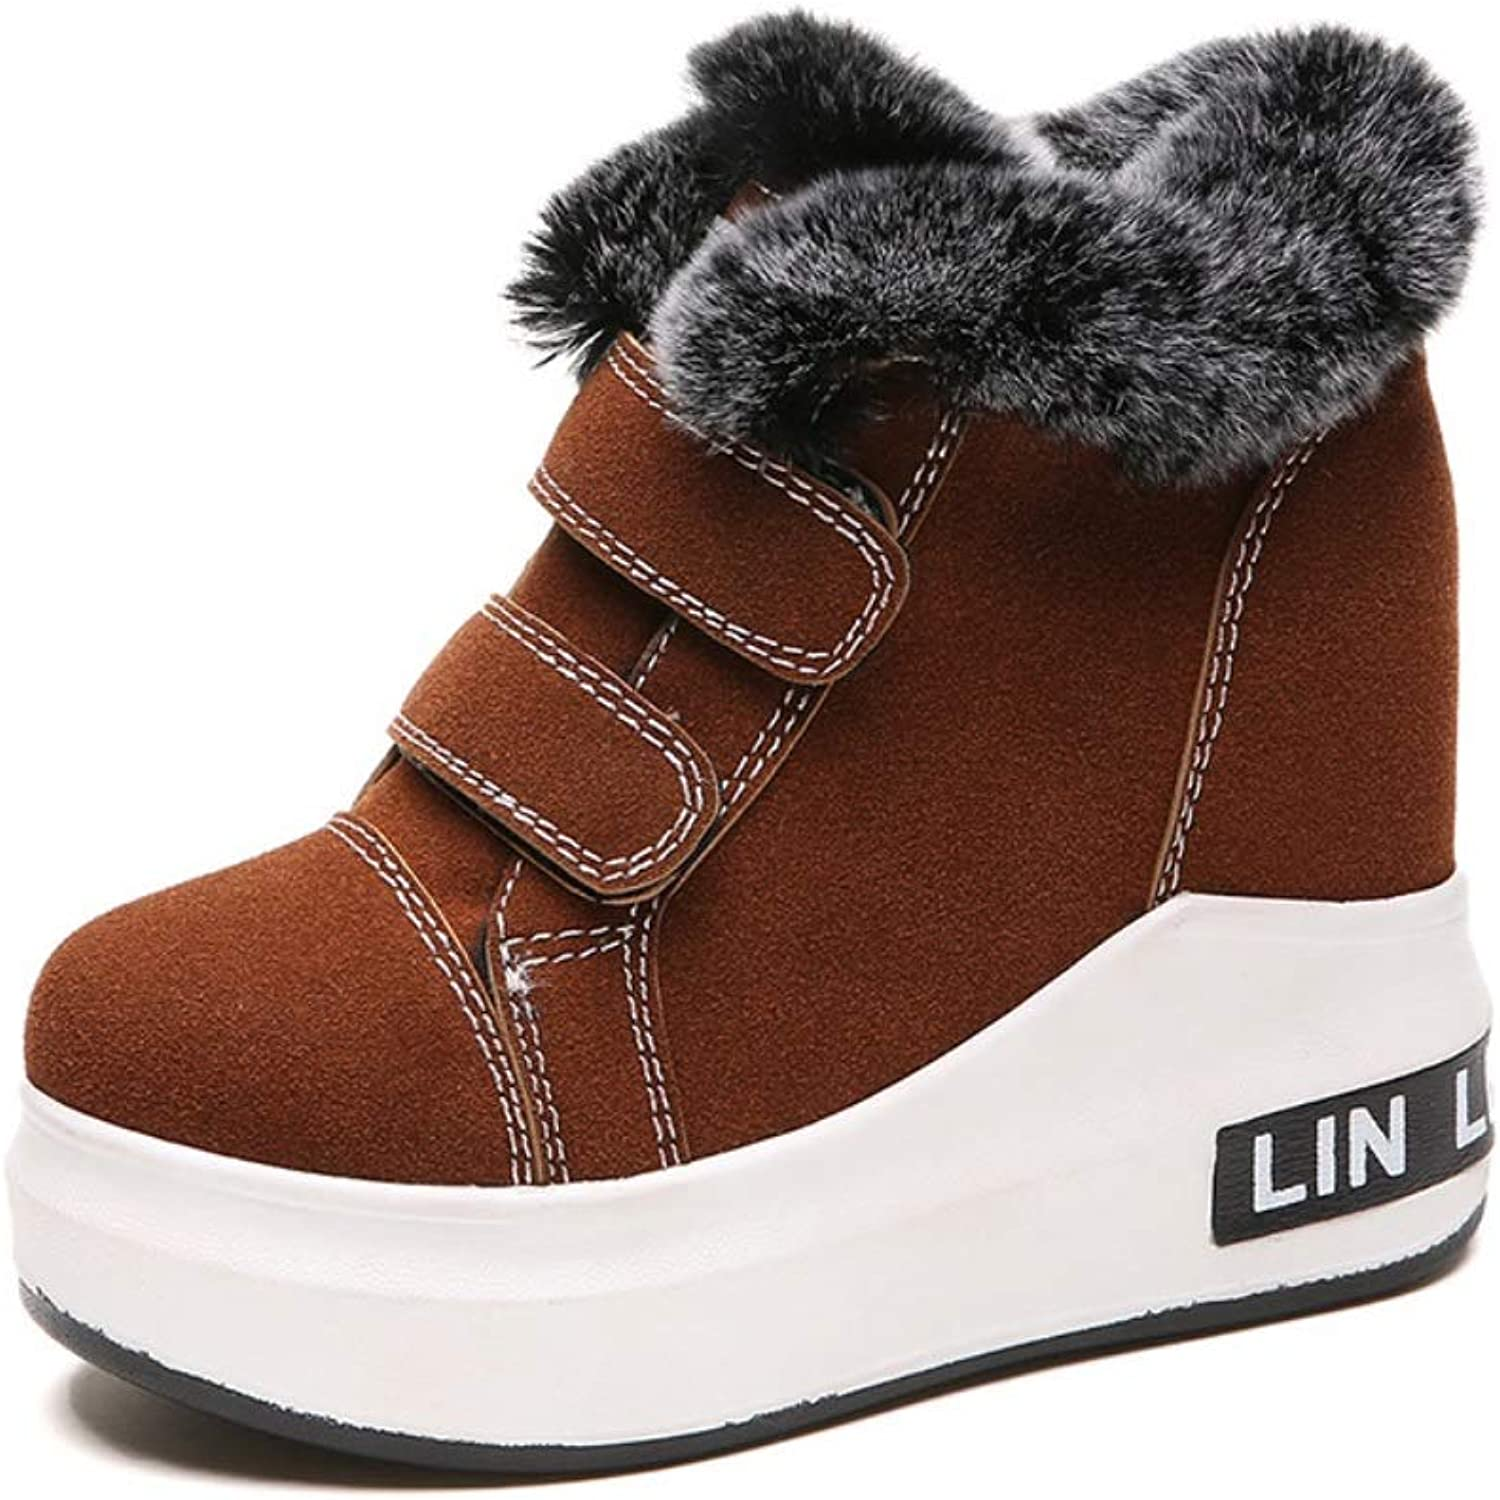 Women's Invisible High-Heeled Platform Sports shoes Wedges Series Punk Ankle Boots Plus Velvet Warm Winter Snow Boots